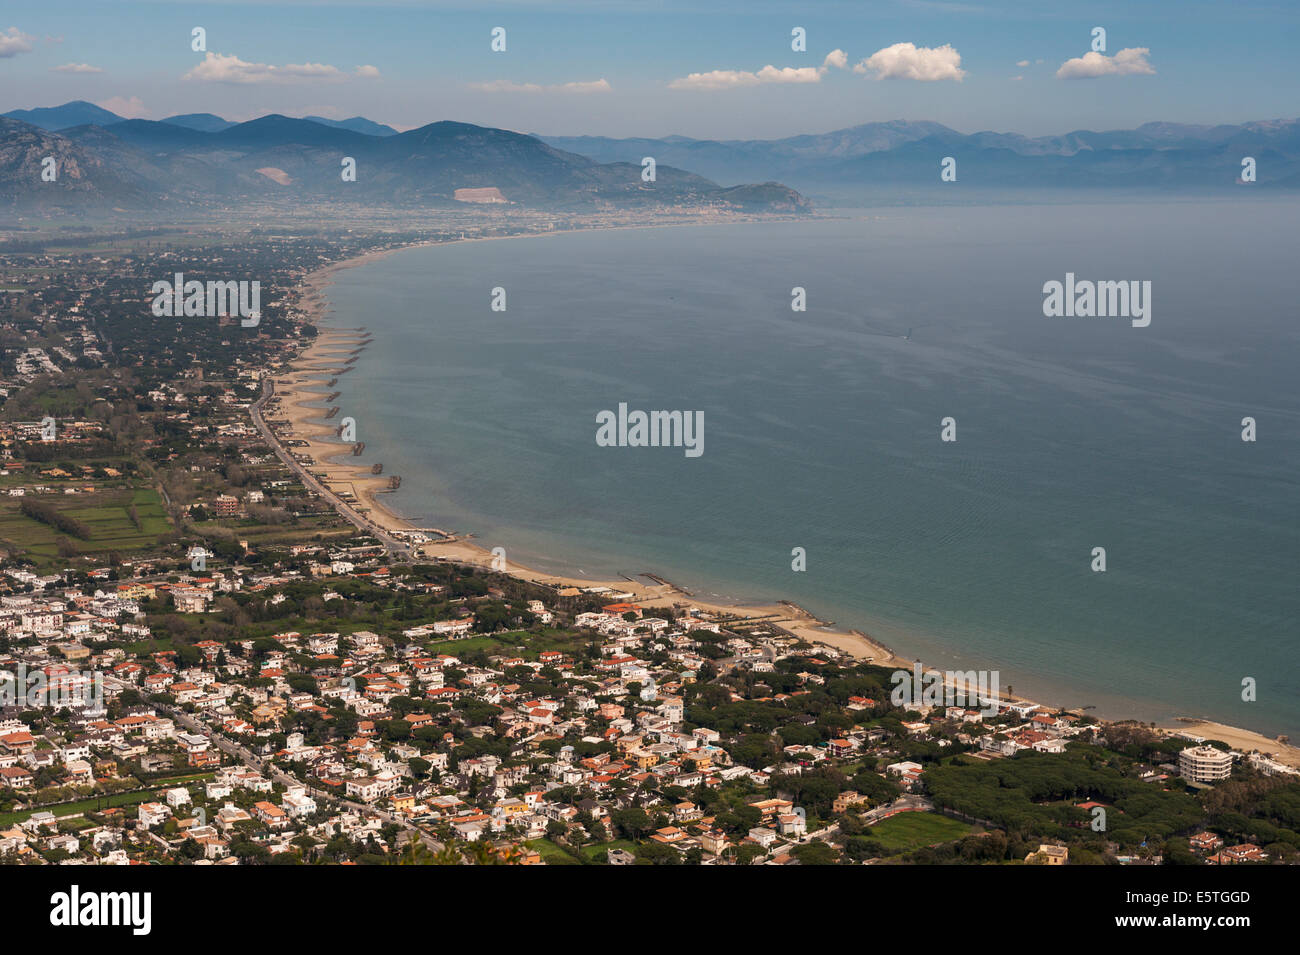 View of San Felice Circeo from the national park Parco Nazionale del Circeo, San Felice Circeo, Lazio, Italy - Stock Image